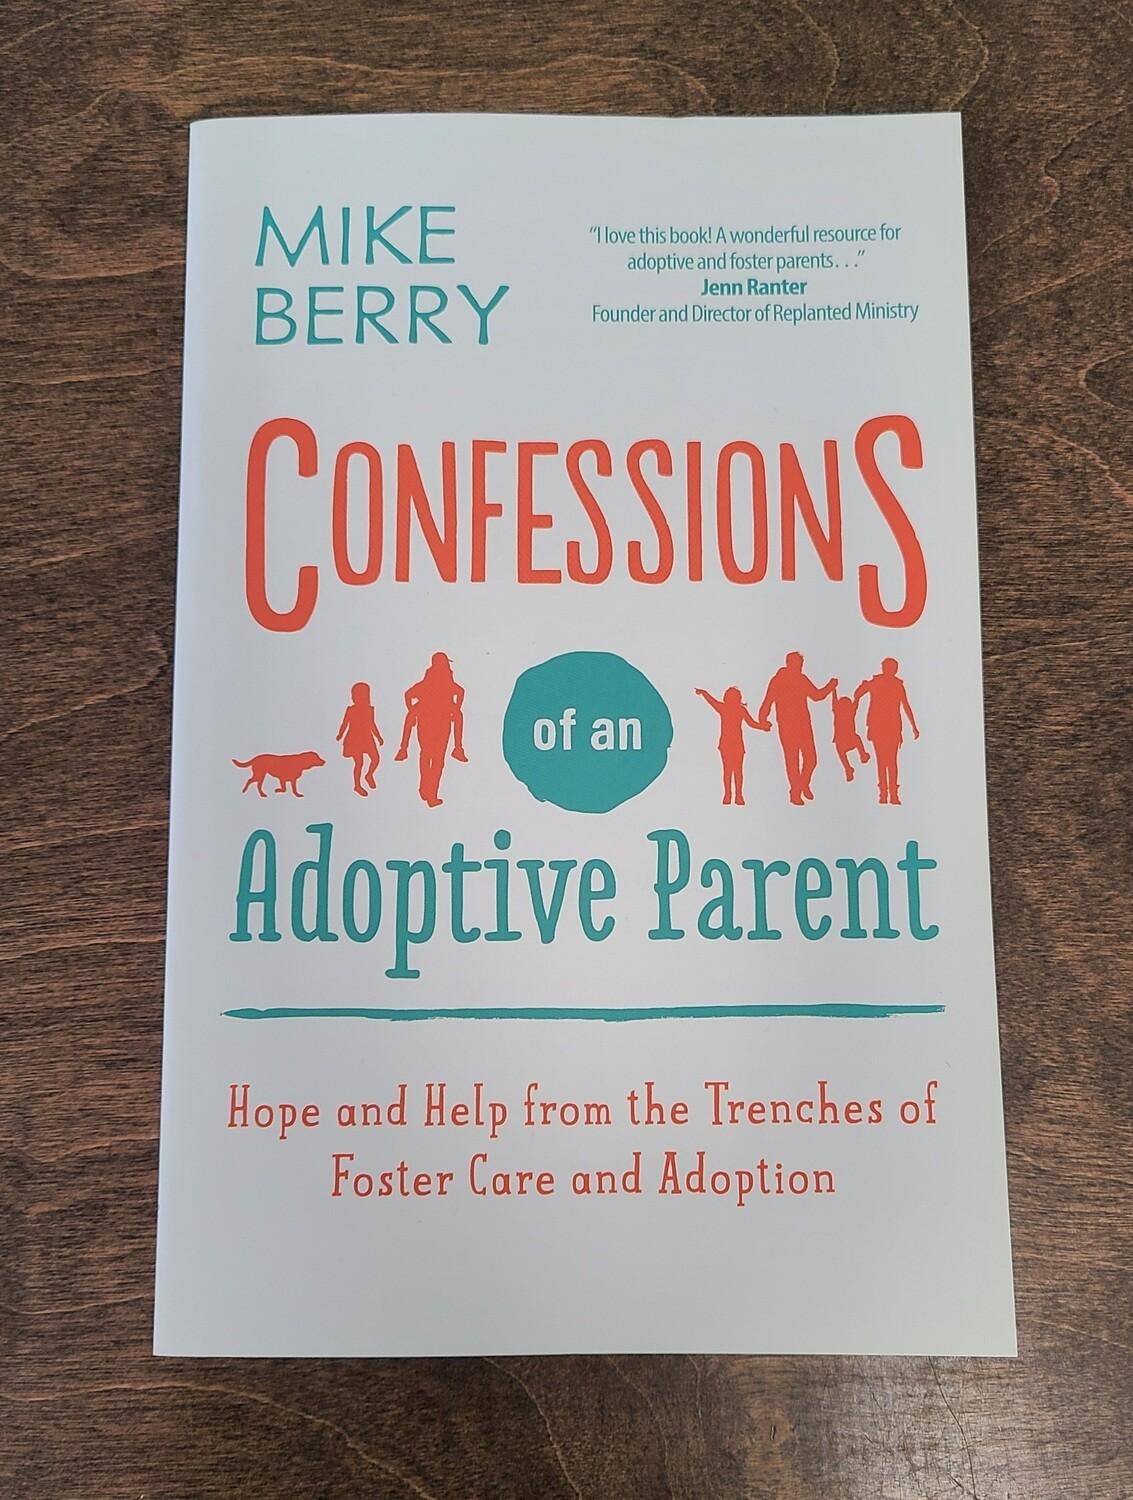 Confessions of an Adoptive Parent: Hope and Help from the Trenches of Foster Care and Adoption by Mike Berry